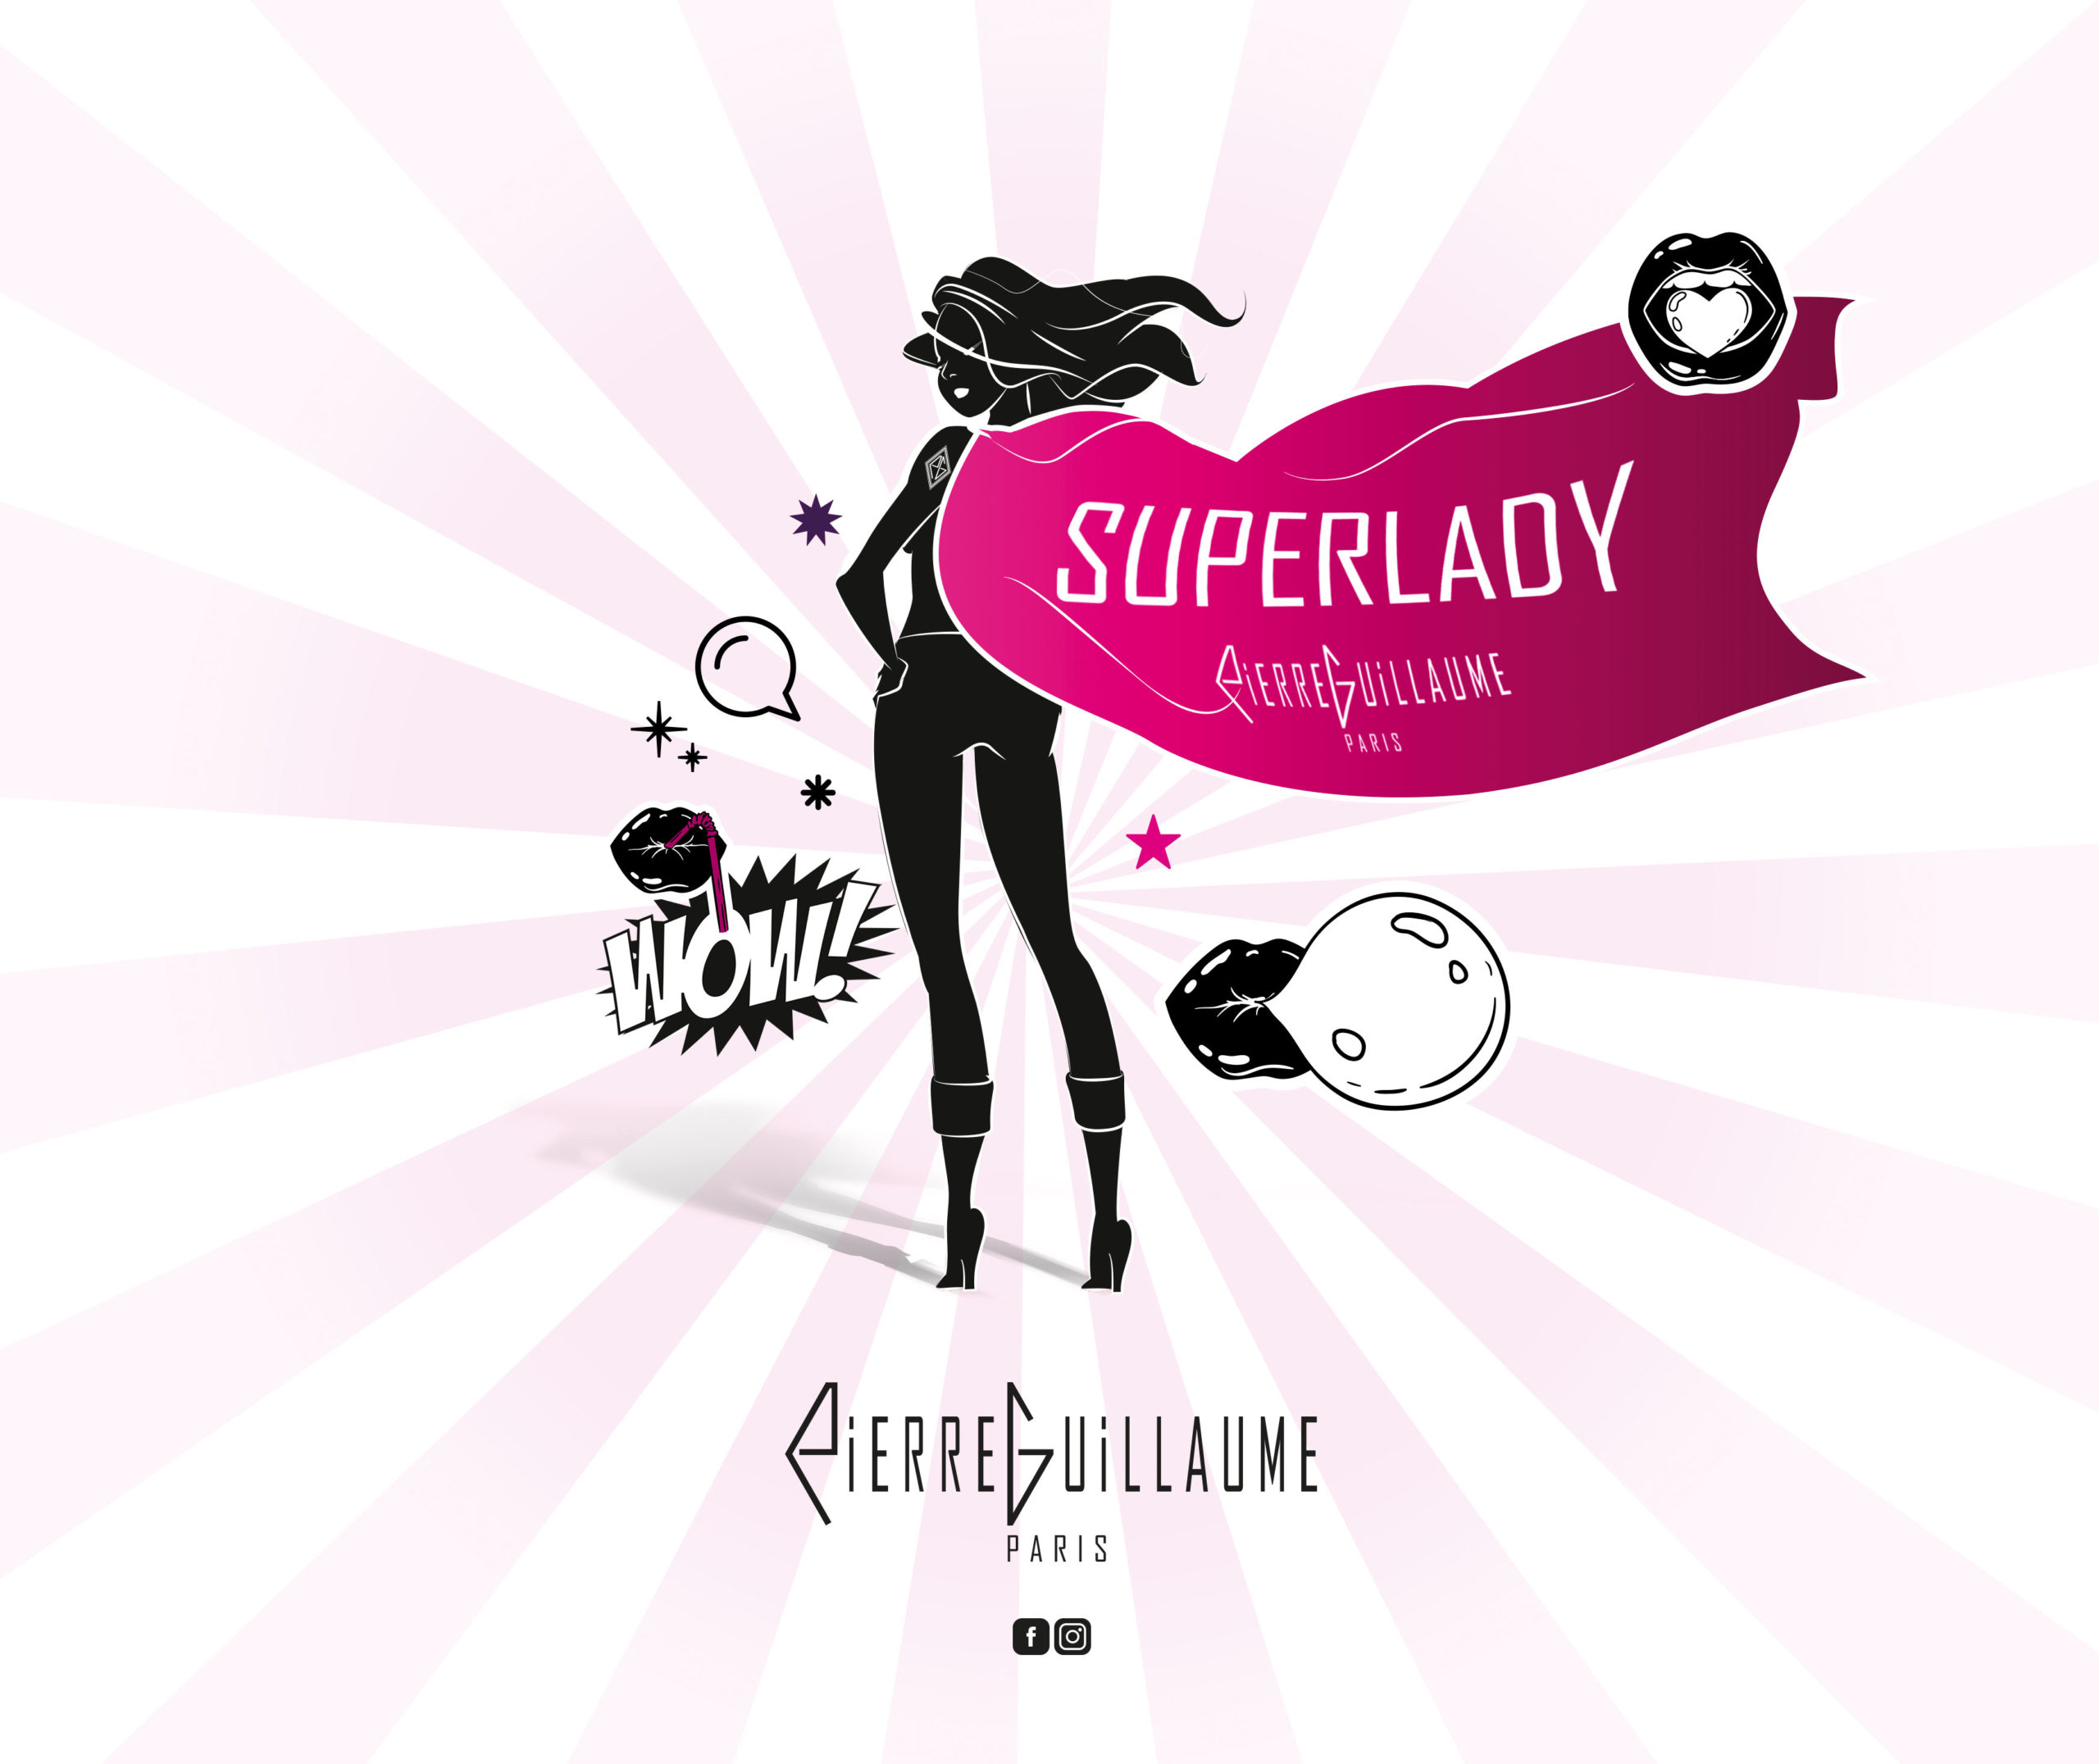 SUPERLADY – COLLECTION PIERRE GUILLAUME NOIRE